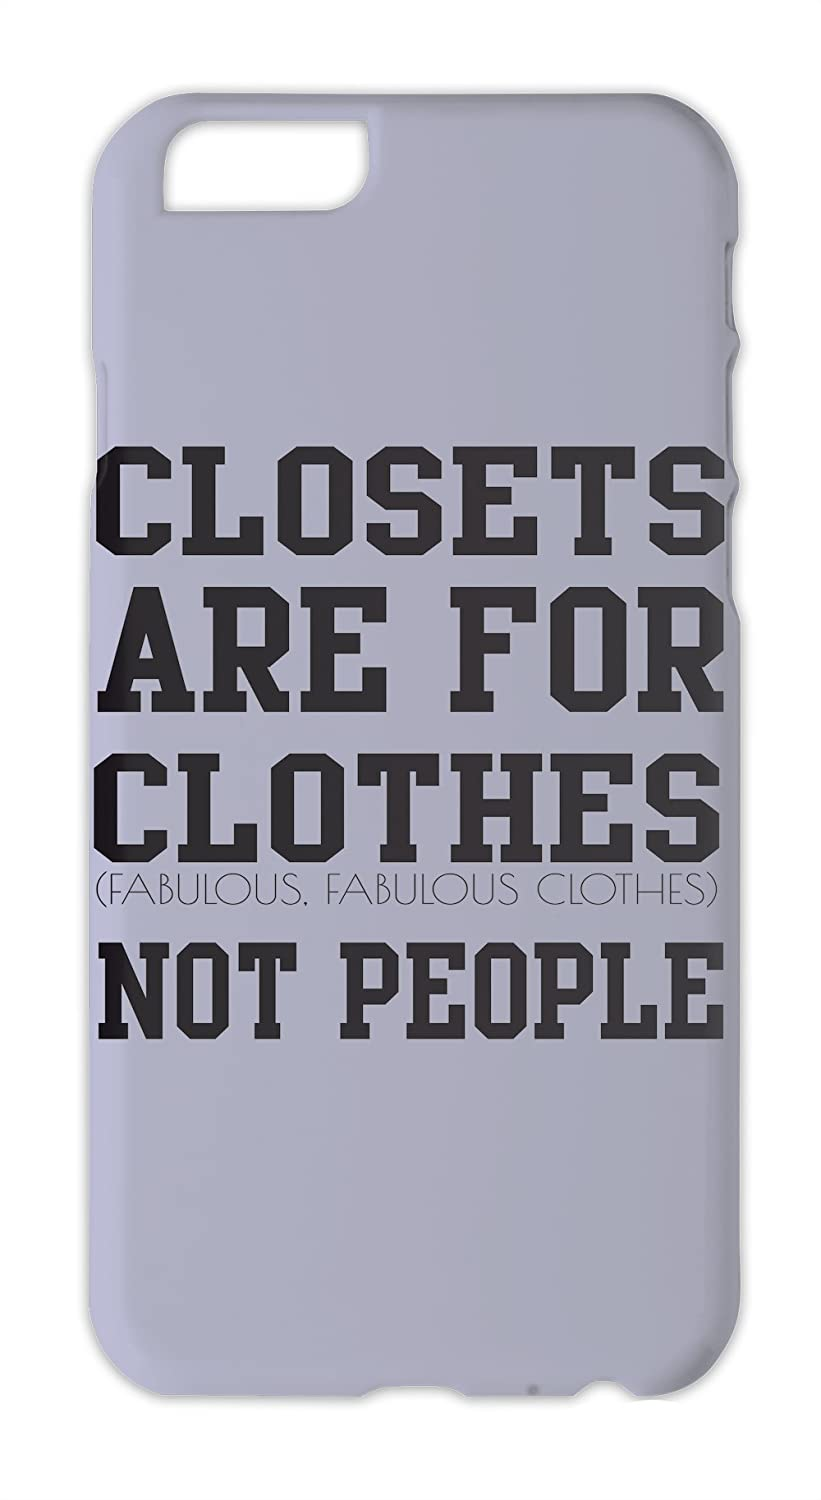 c stf are for by lgbt shirt kimcf closets clothes people gay closet small stickers works lesbian